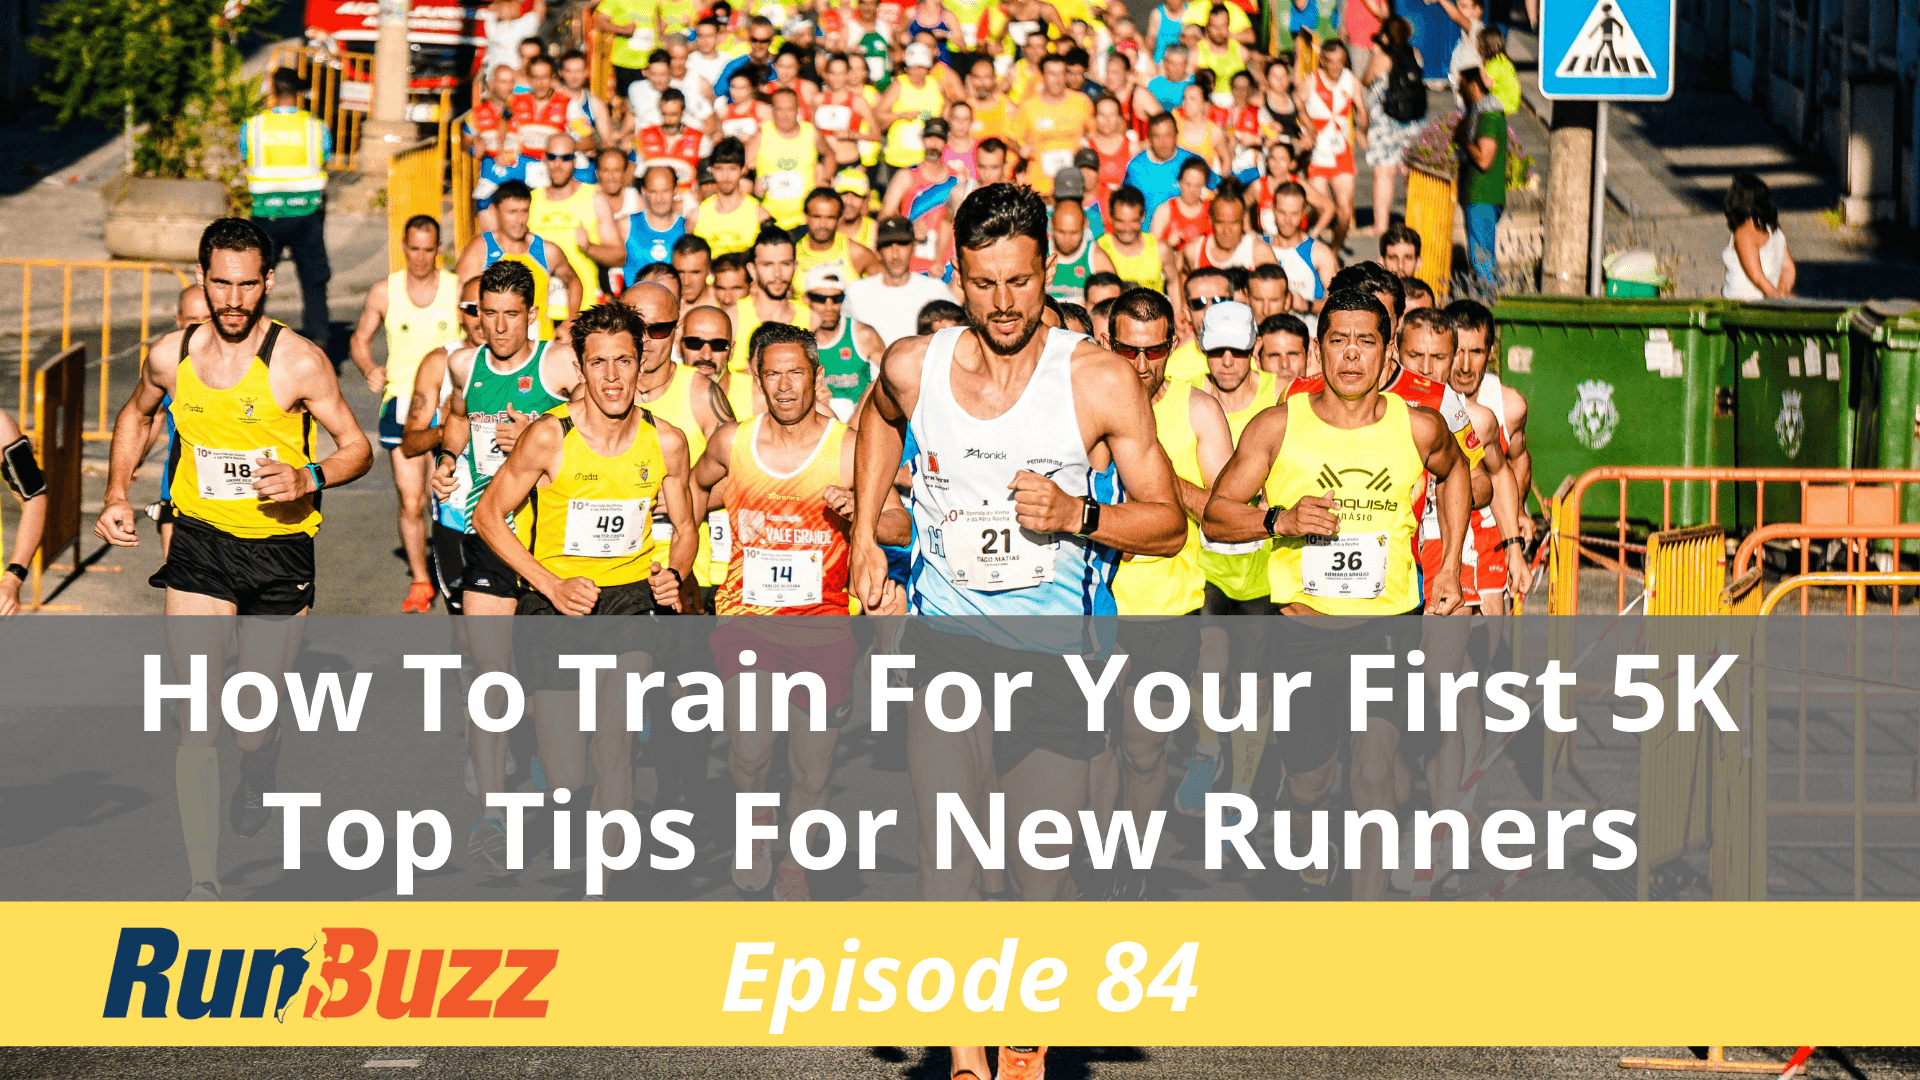 How-To-Train-For-Your-First-5K-Top-Tips-For-New-Runners